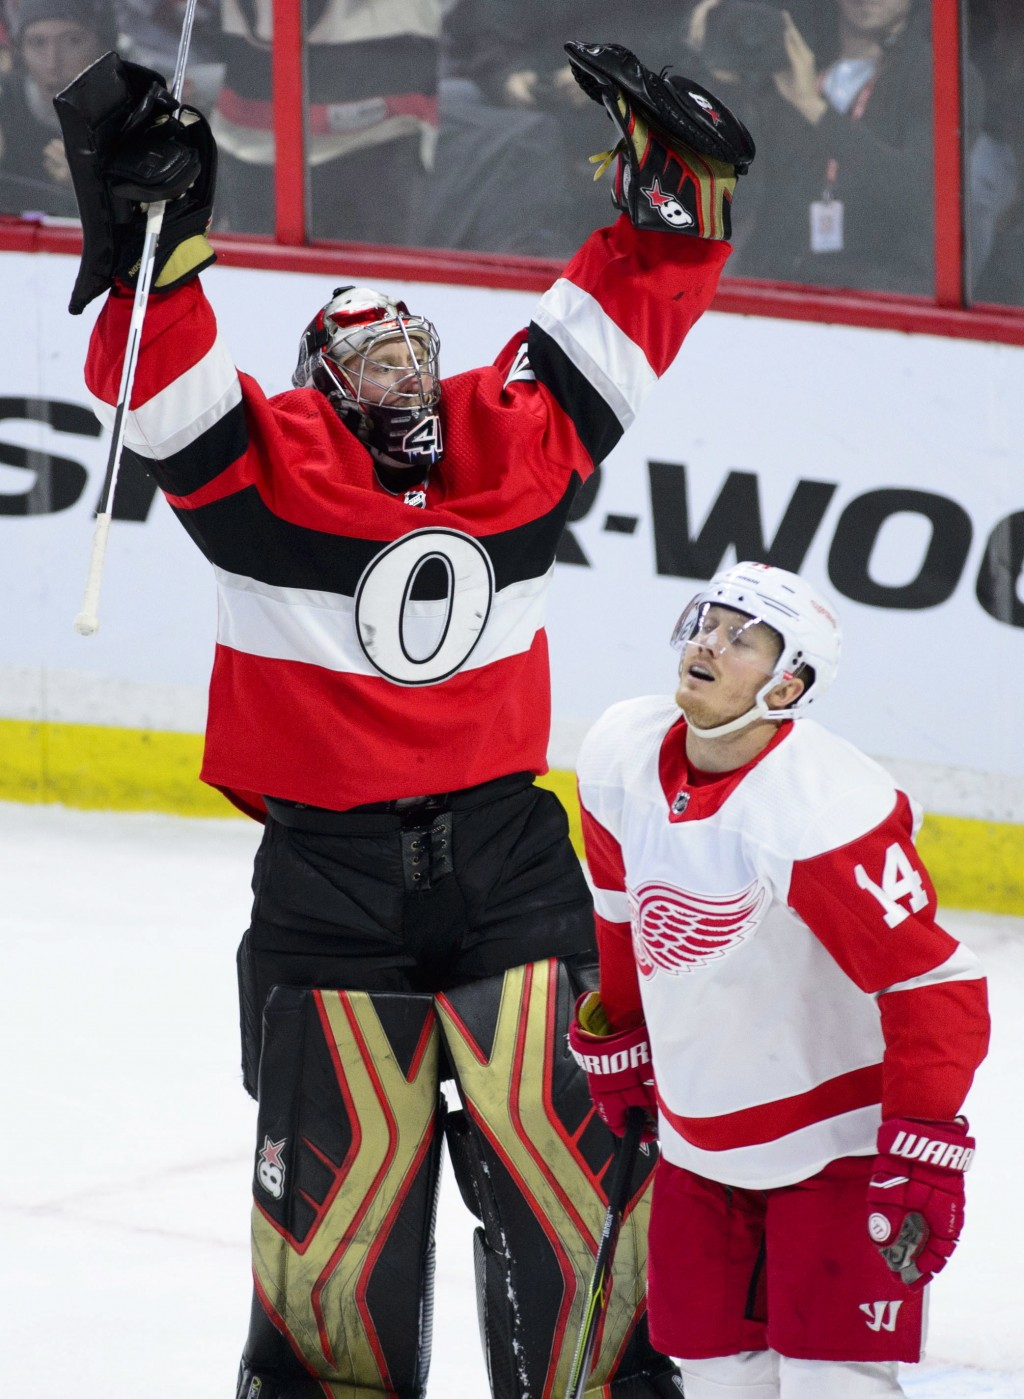 Ottawa Senators goaltender Craig Anderson (41) celebrates a 2-1 win as Detroit Red Wings right wing Gustav Nyquist (14) skates past after an NHL hocke